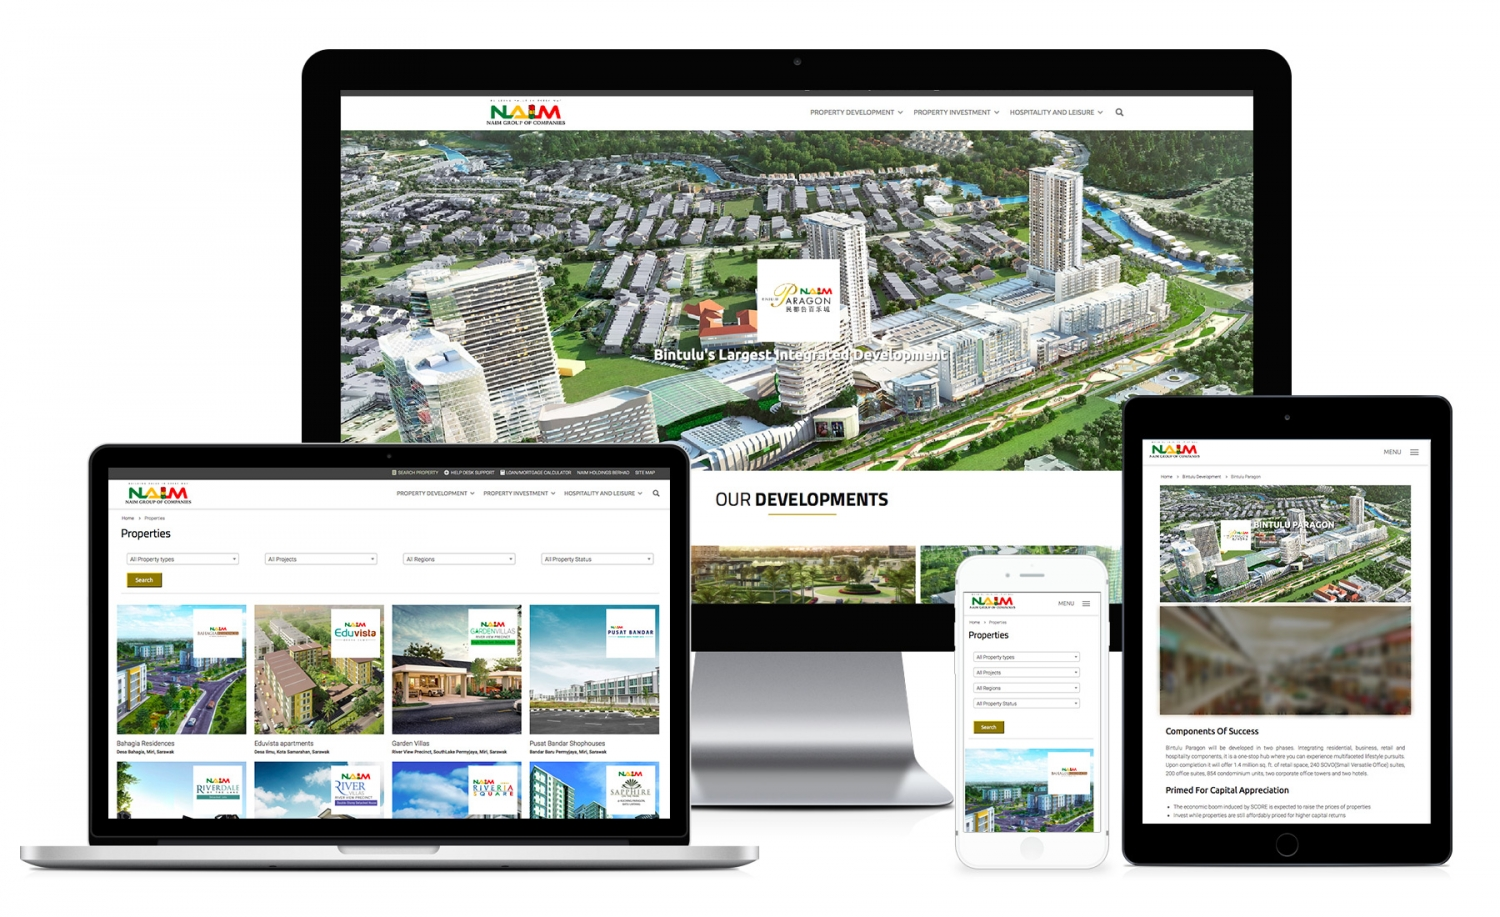 Naim Property (By Naim Holdings Berhad) Website design and setup